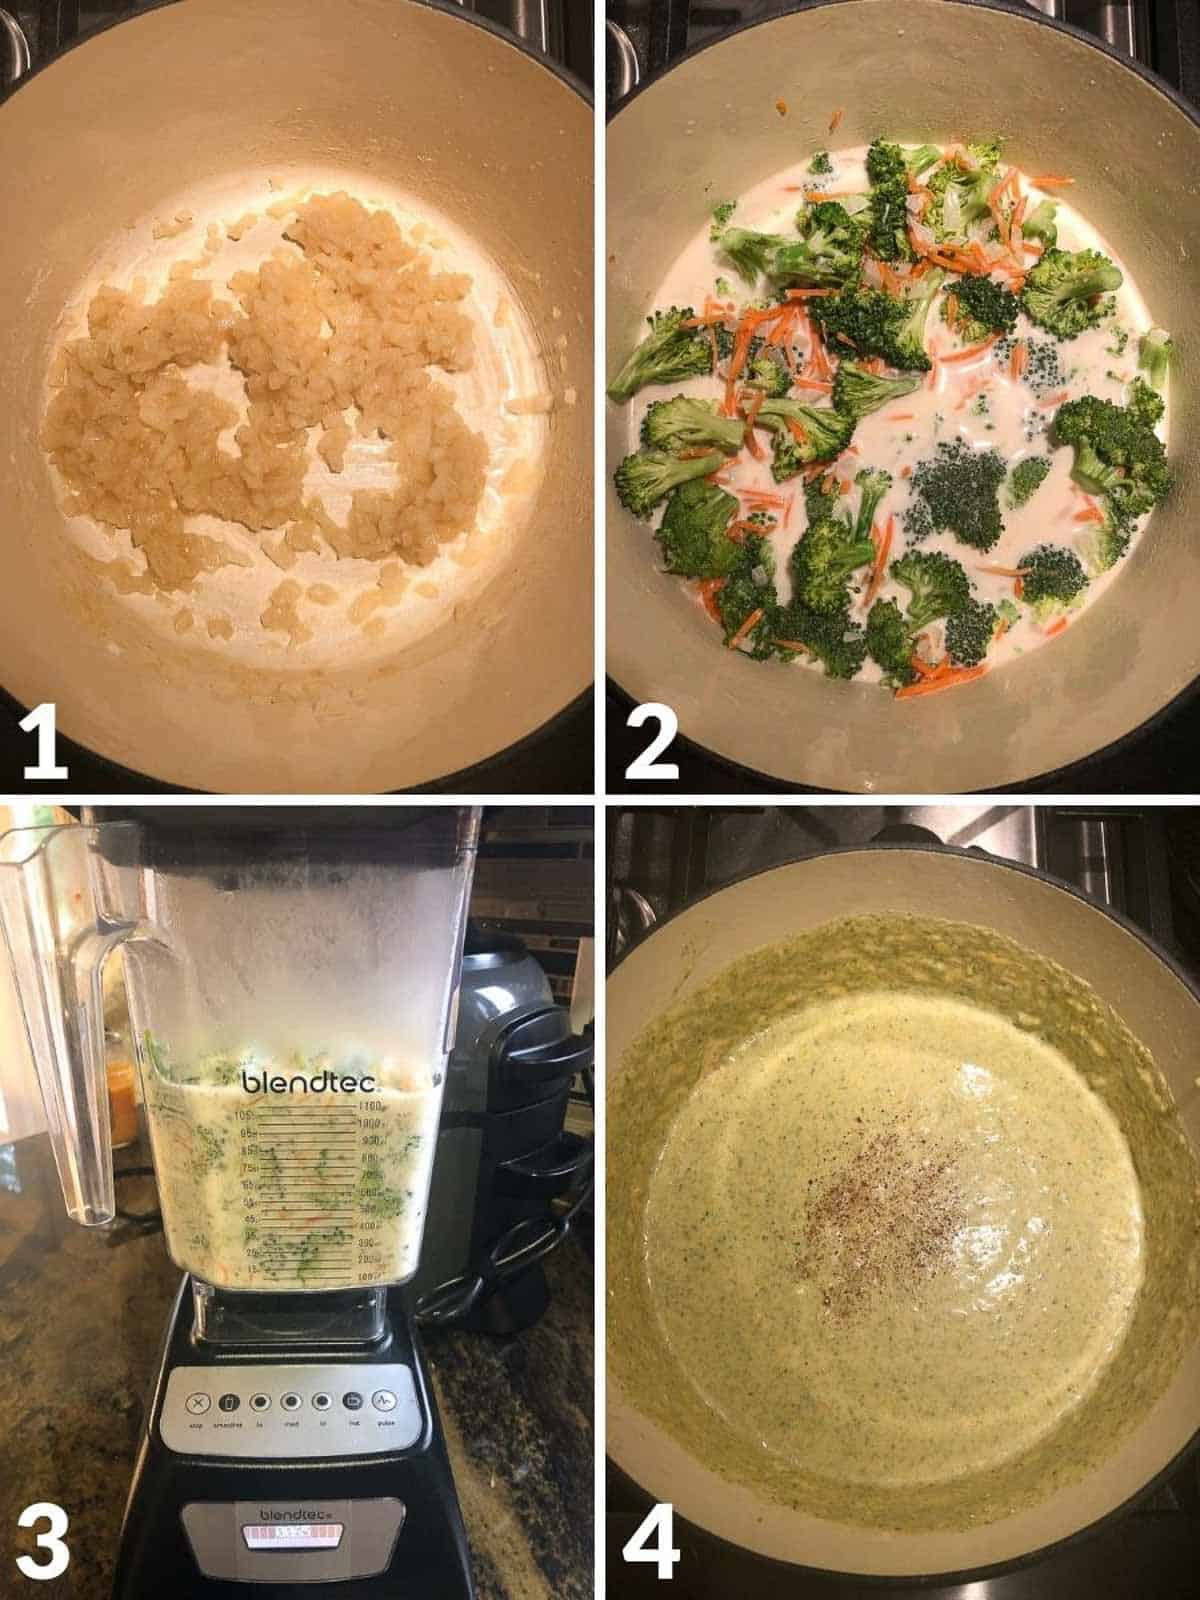 Collage of 4 images showing how to make broccoli cheddar soup